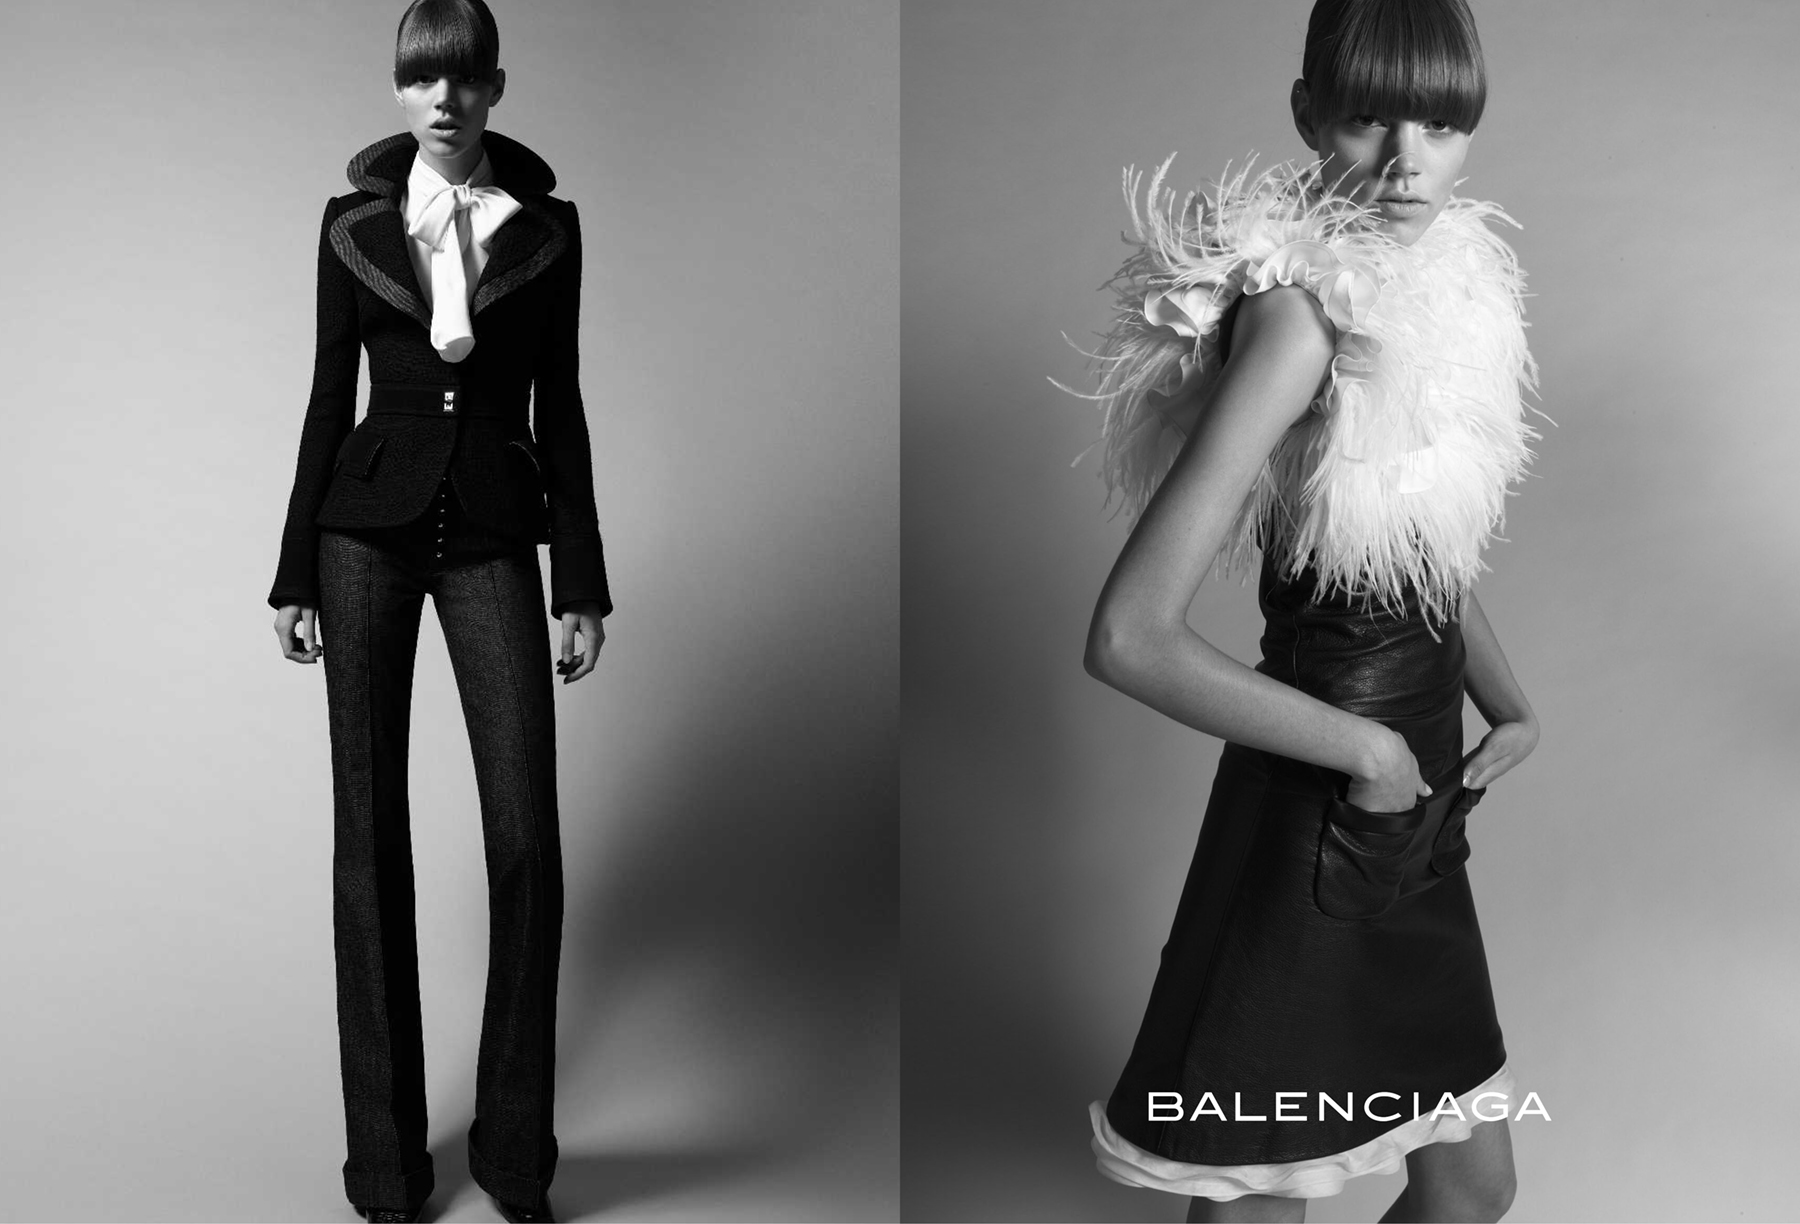 Balenciaga Fashion Ad Archive Photos